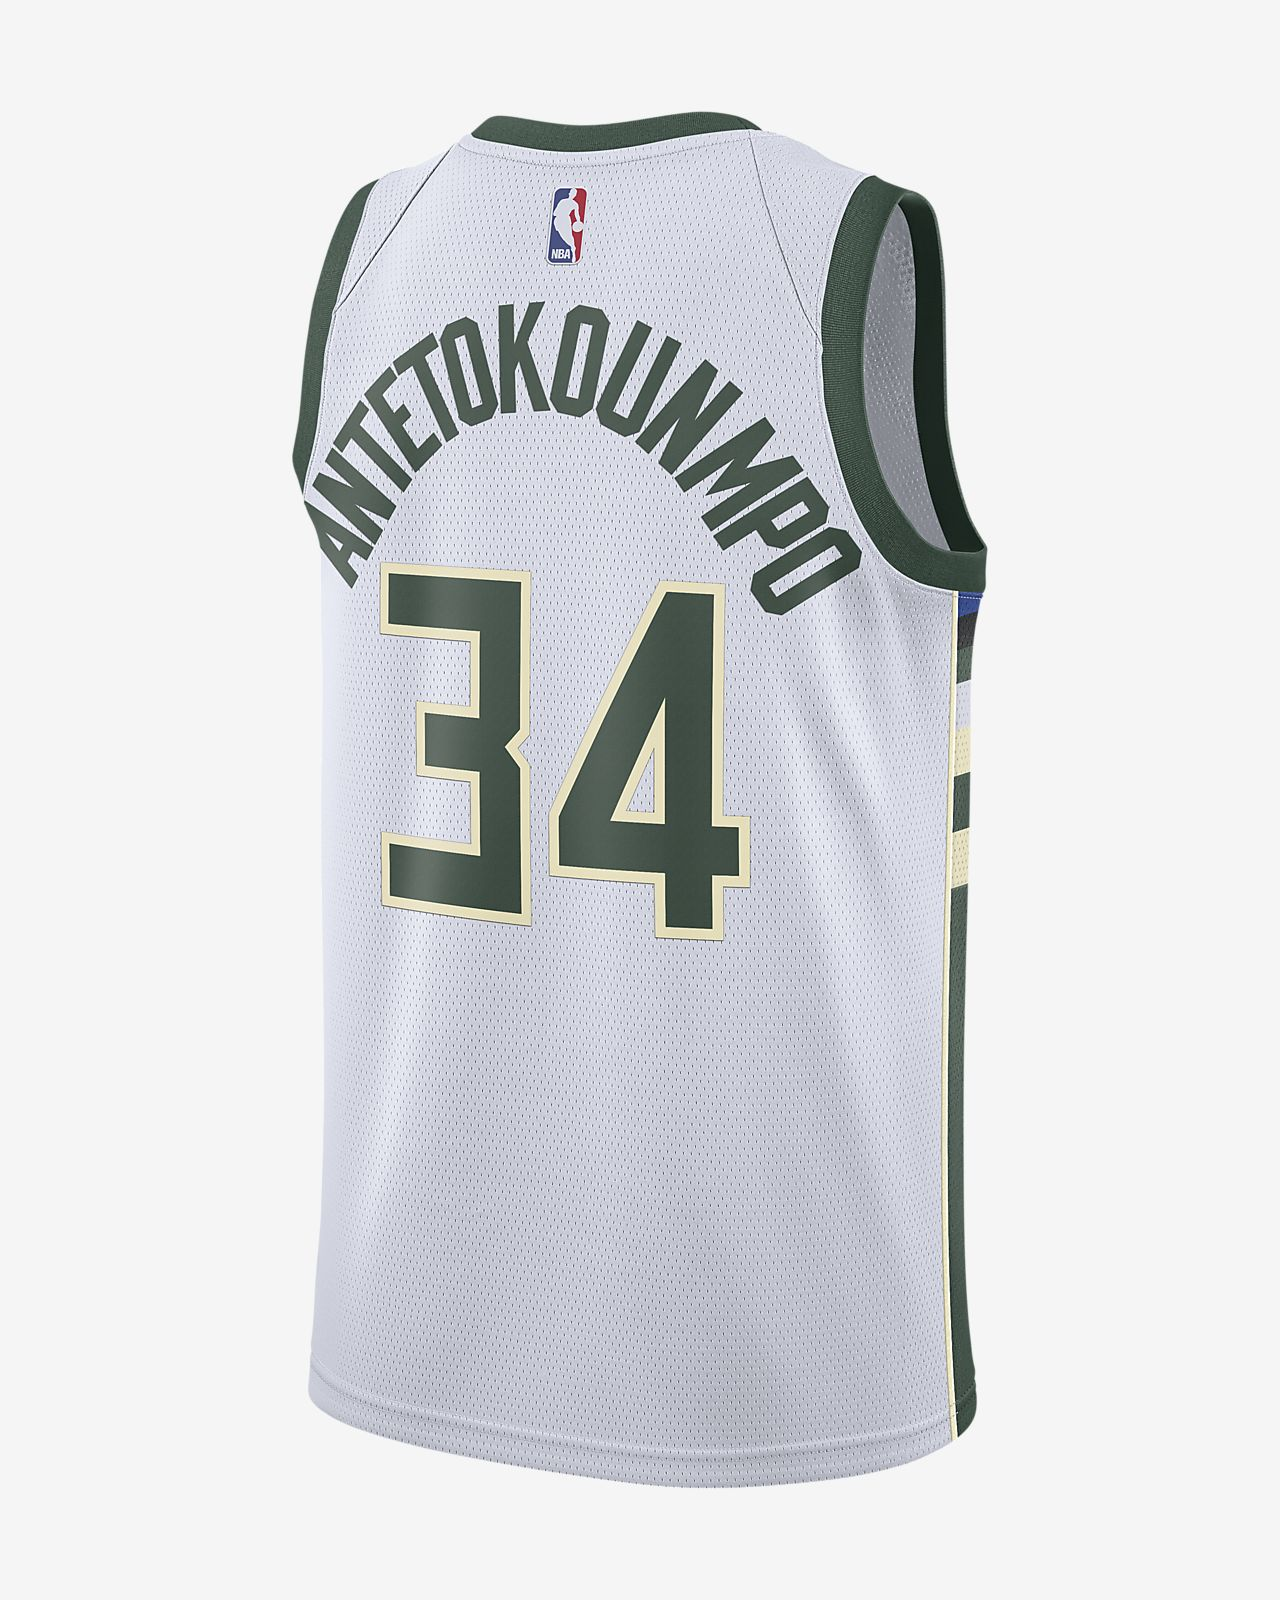 5767c4296844 ... Giannis Antetokounmpo Association Edition Swingman (Milwaukee Bucks) Men s  Nike NBA Connected Jersey